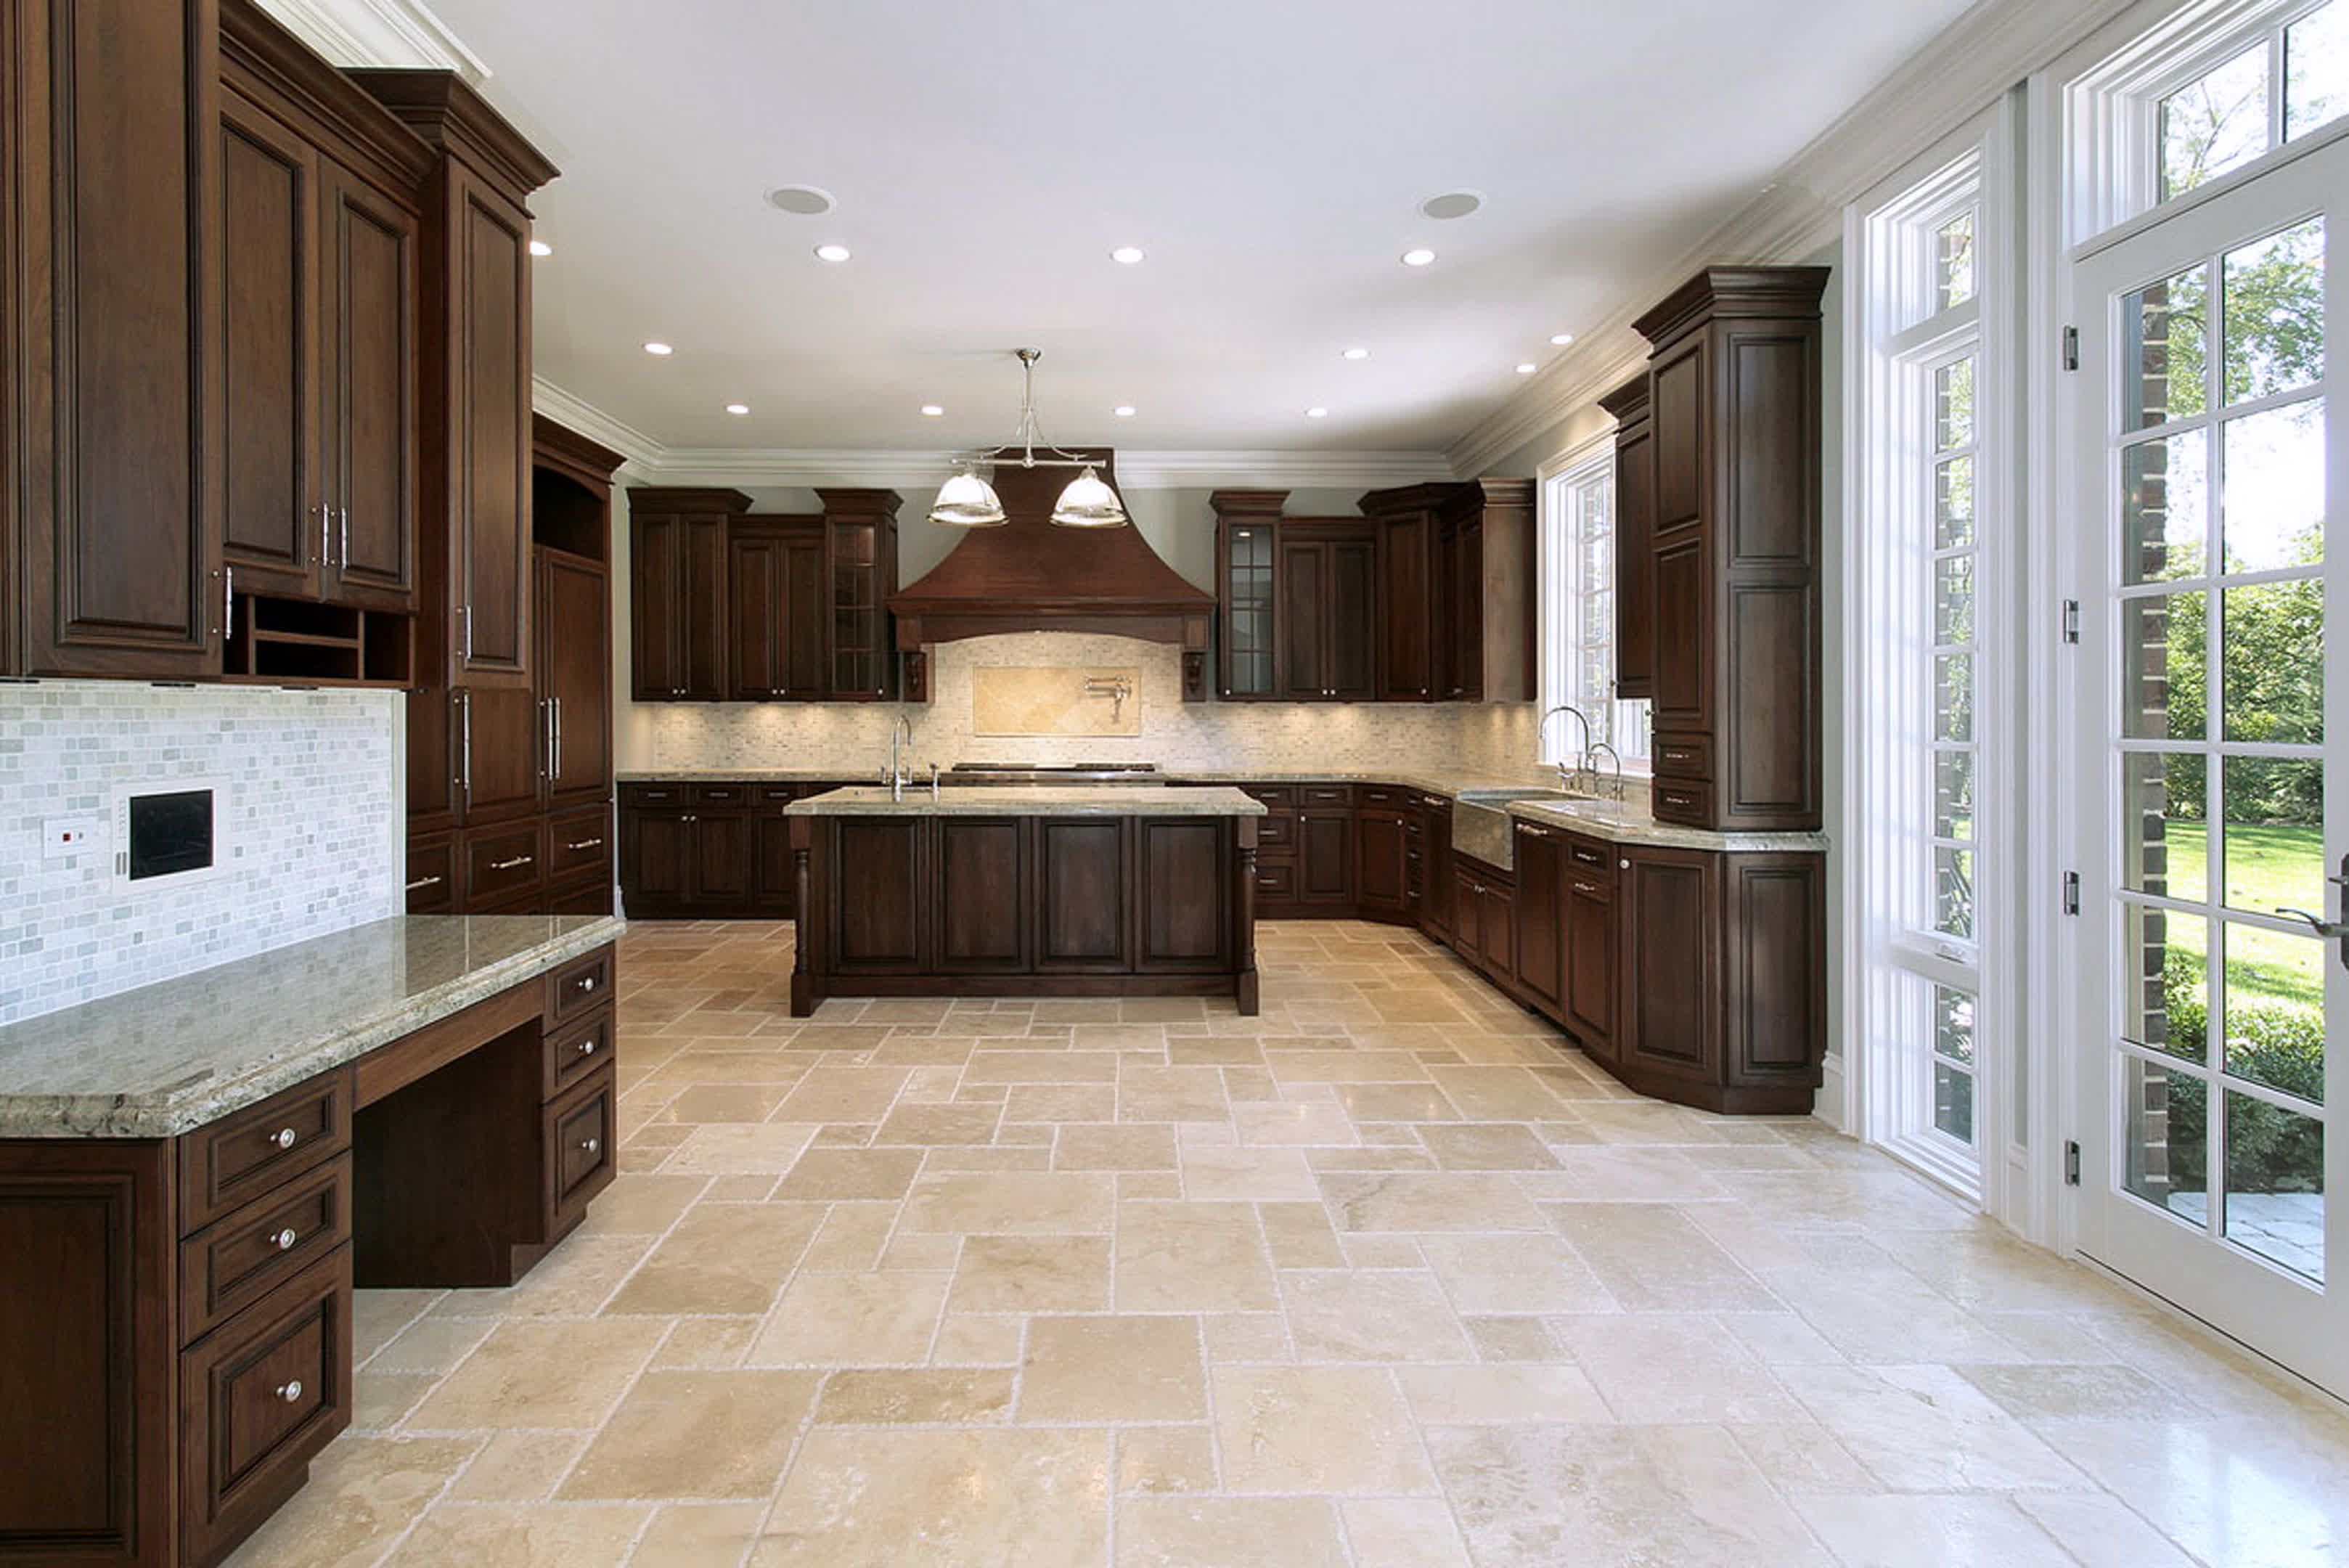 kitchen floor tiles ideas pictures Google